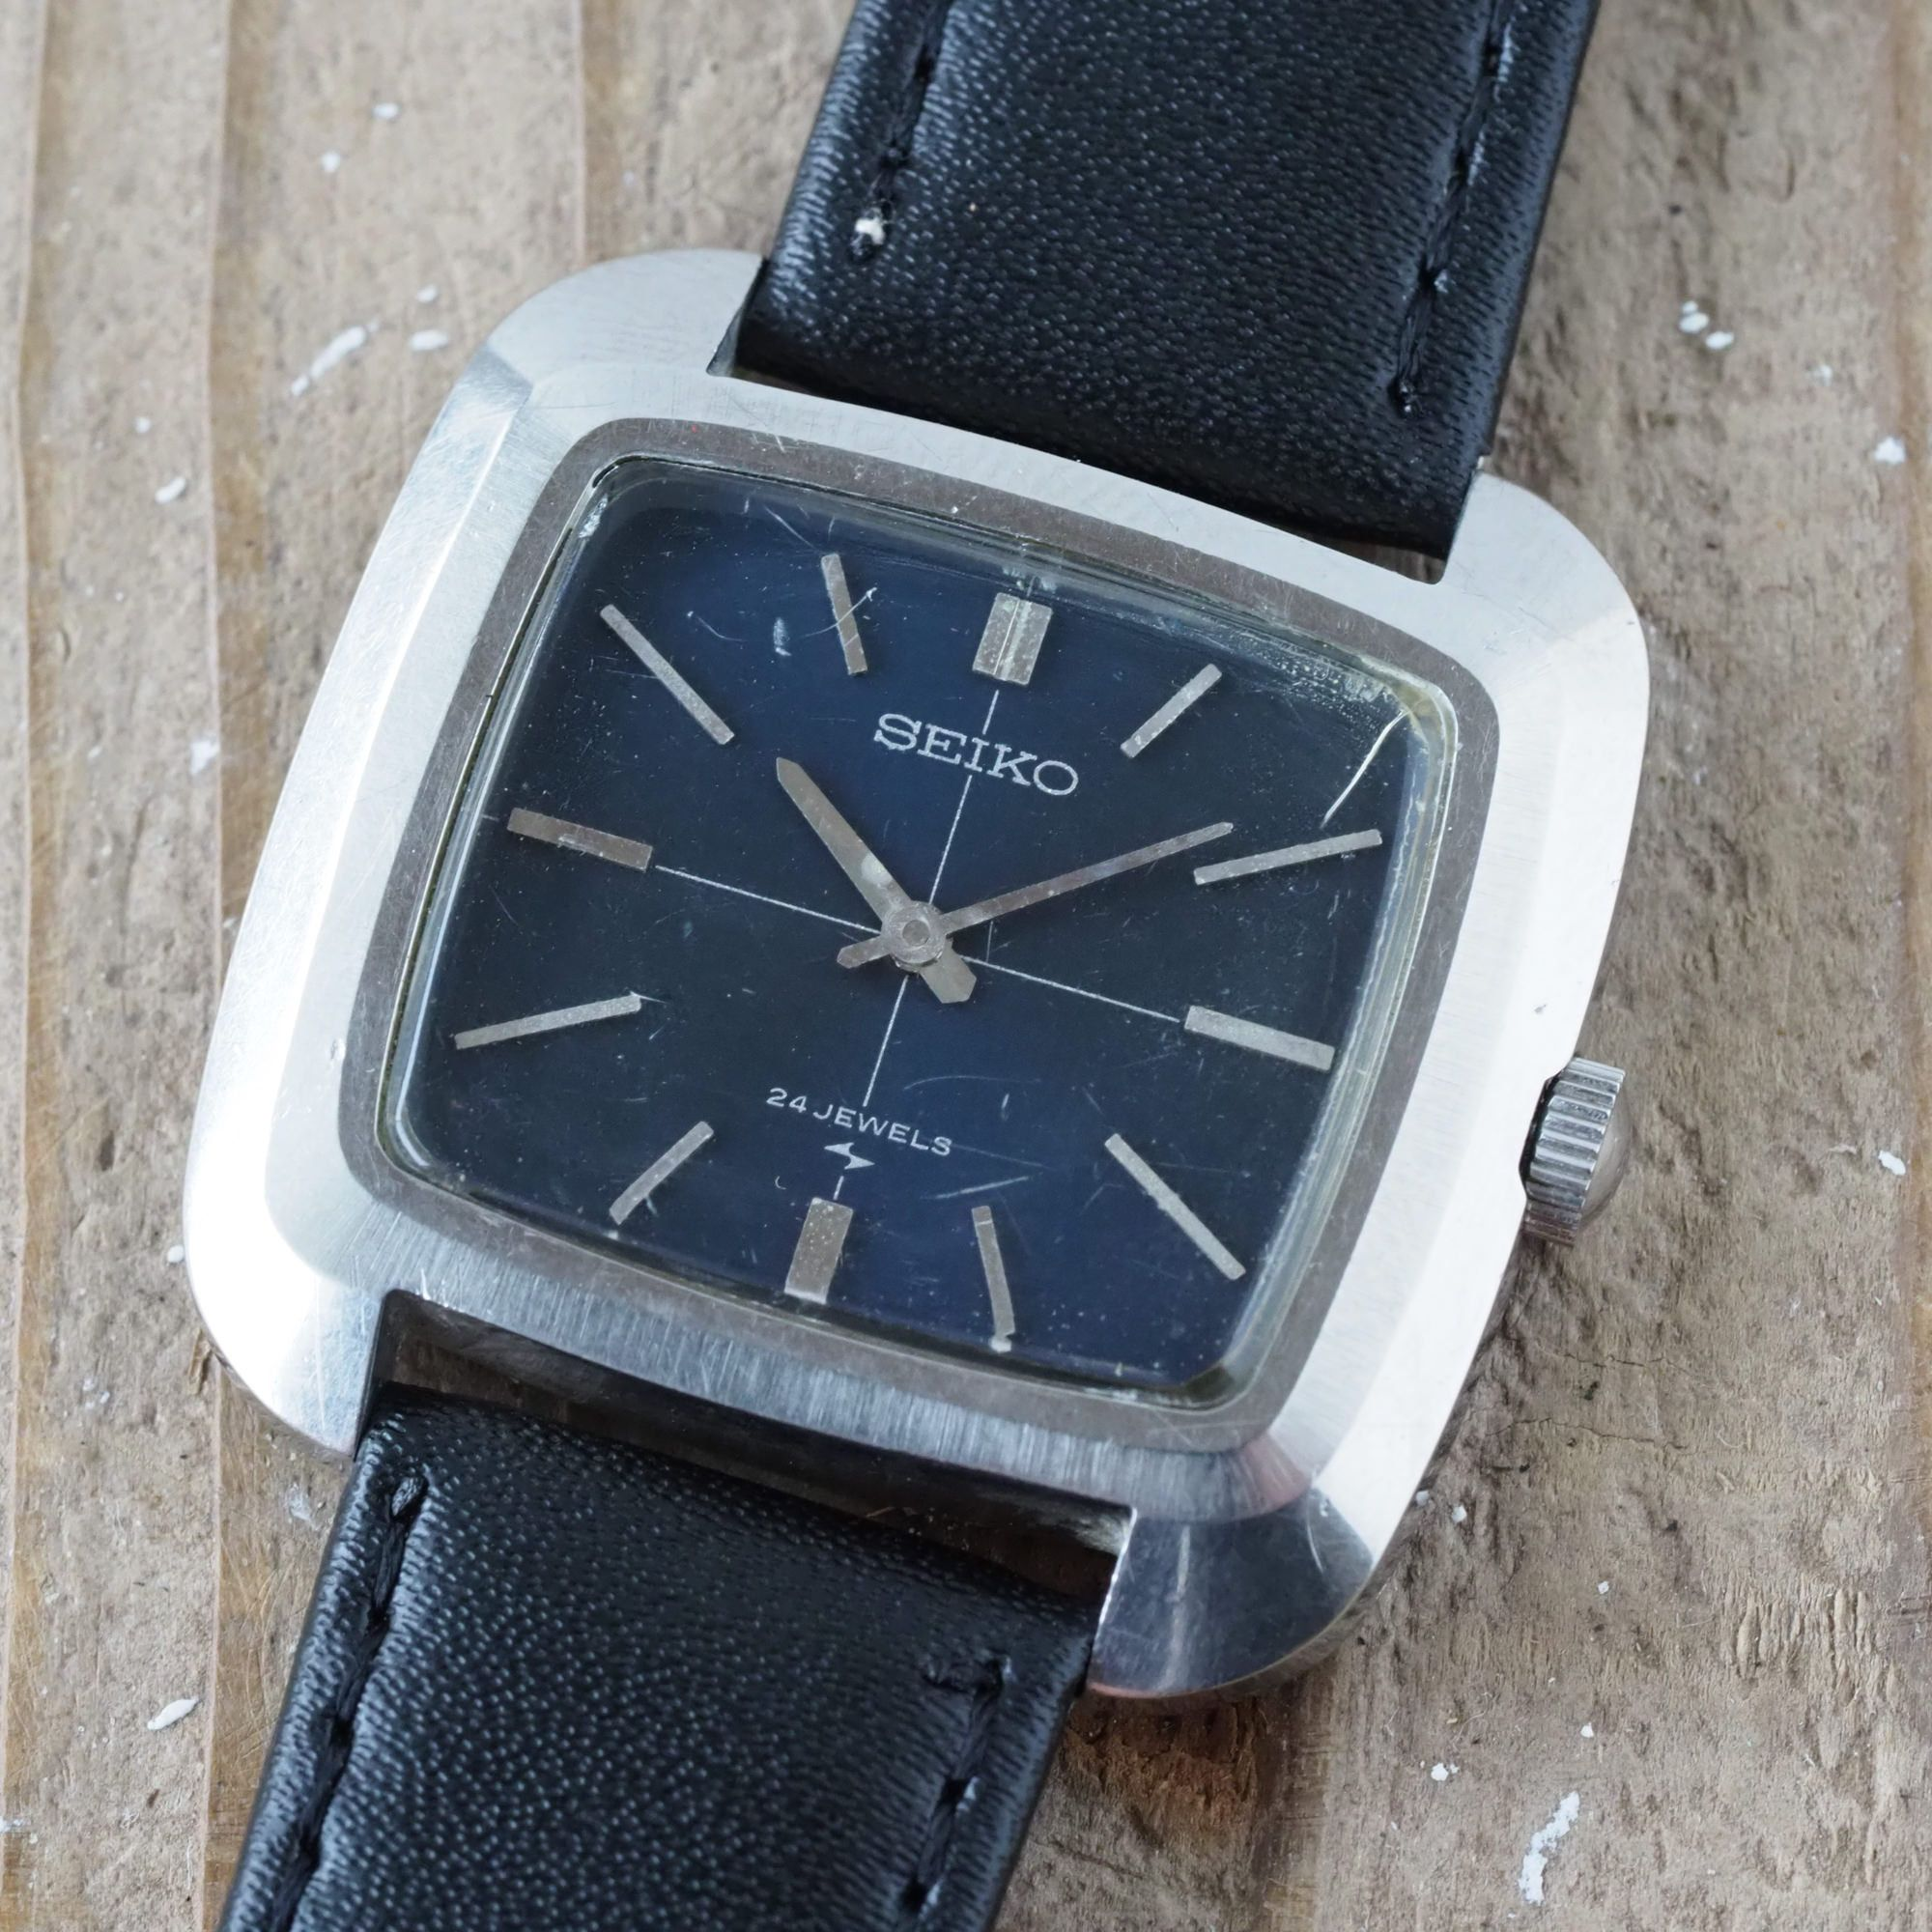 cardini watch carlo gent vintage watches